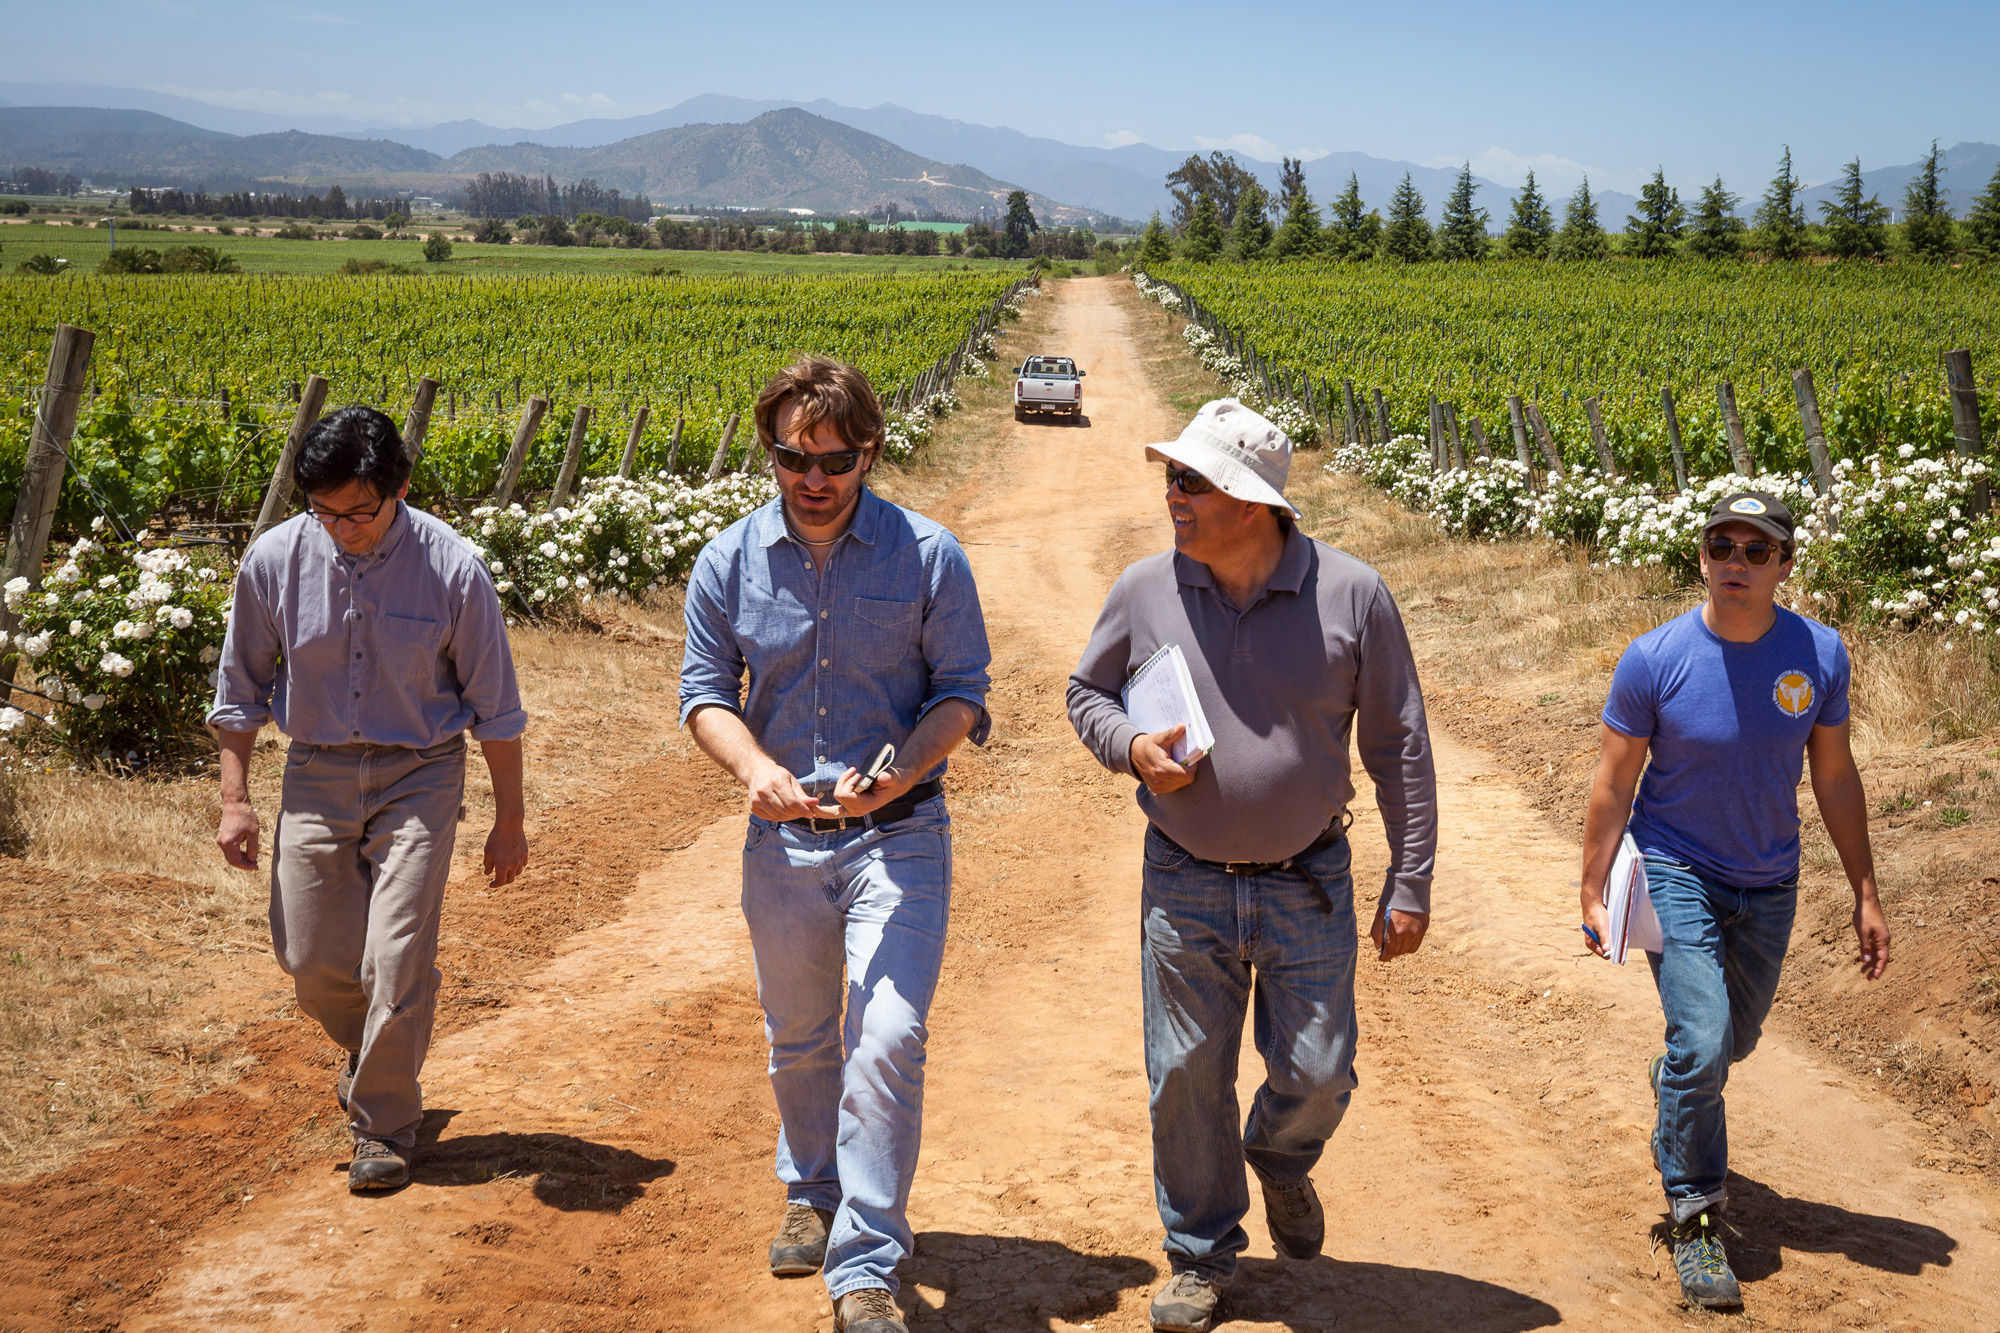 Our winemakers, Byron and Amael walking through the vineyards for an inspection with our vineyard manager Patricio and Ben.